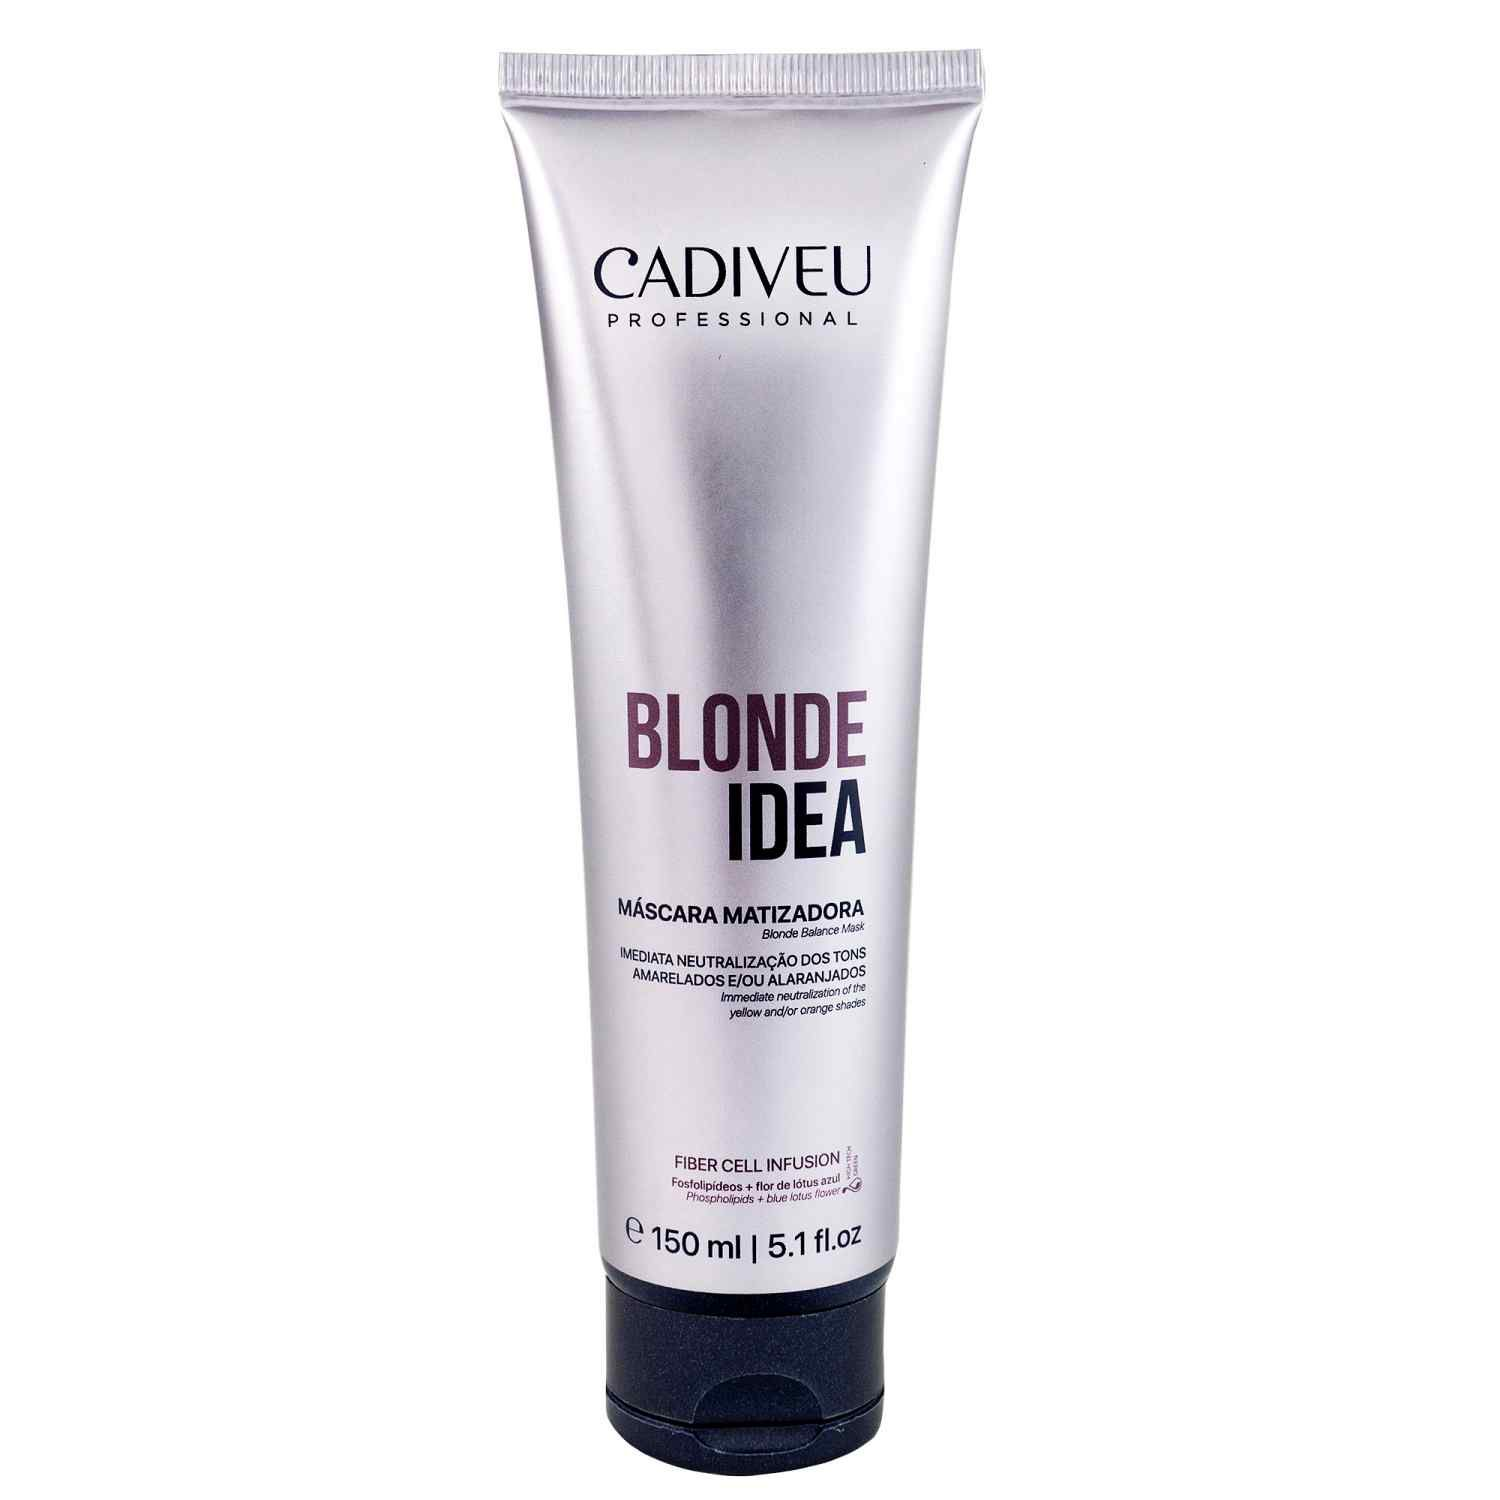 Blonde Idea - Máscara Matizadora 150ml - Cadiveu Professional